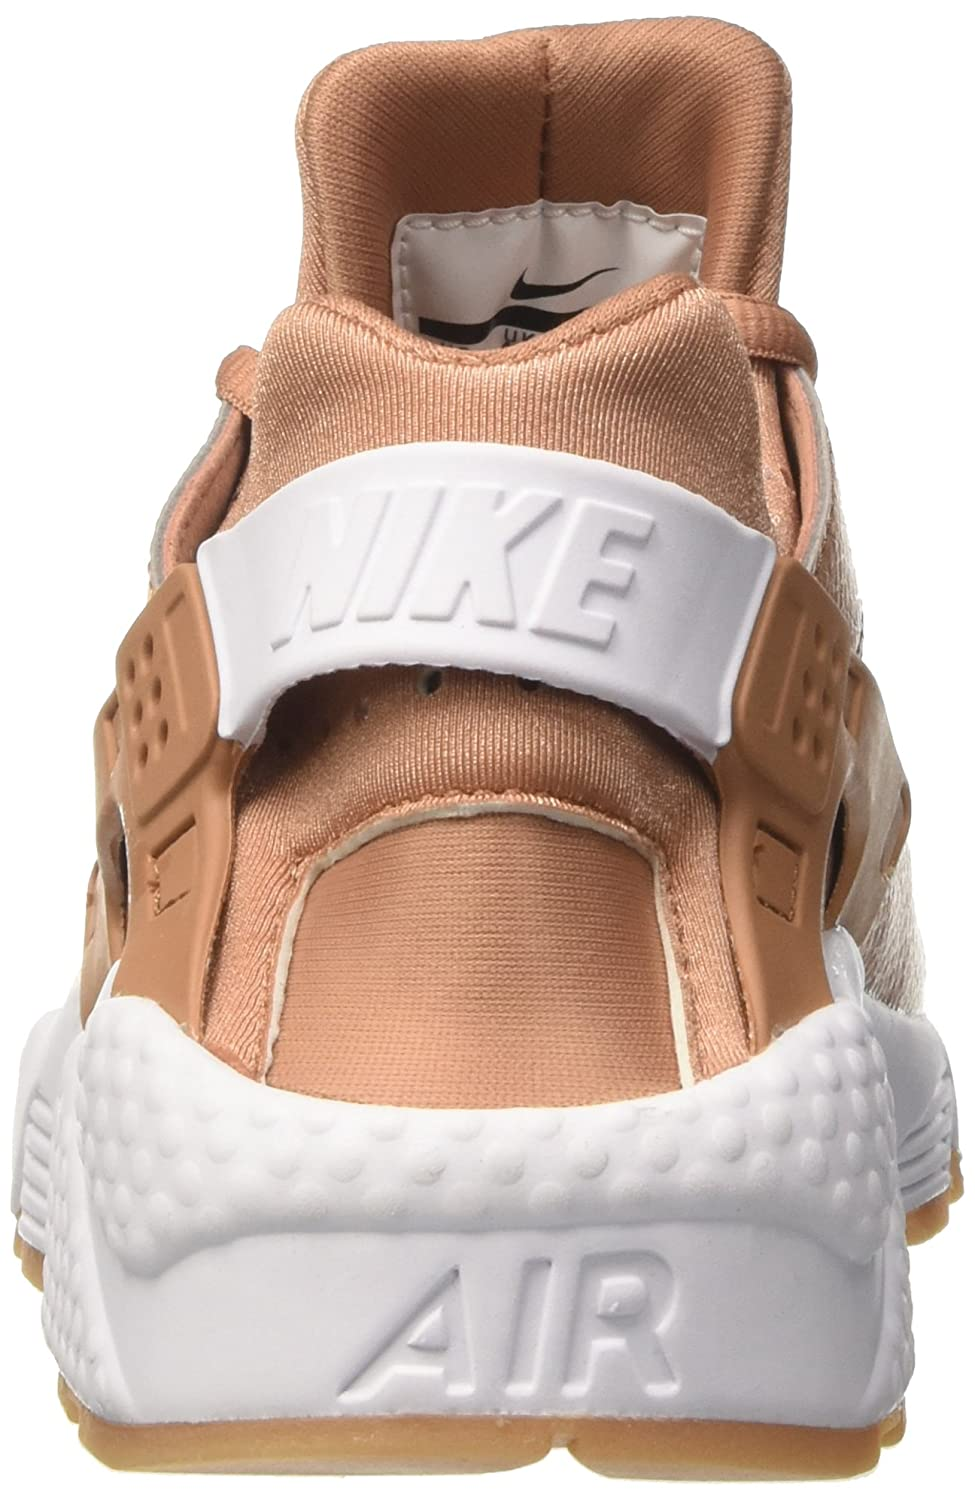 NIKE Damen Beige Air Huarache Run Laufschuhe Beige Damen (Dusted Clay/Weiß/Gum Yellow) 17b3ab